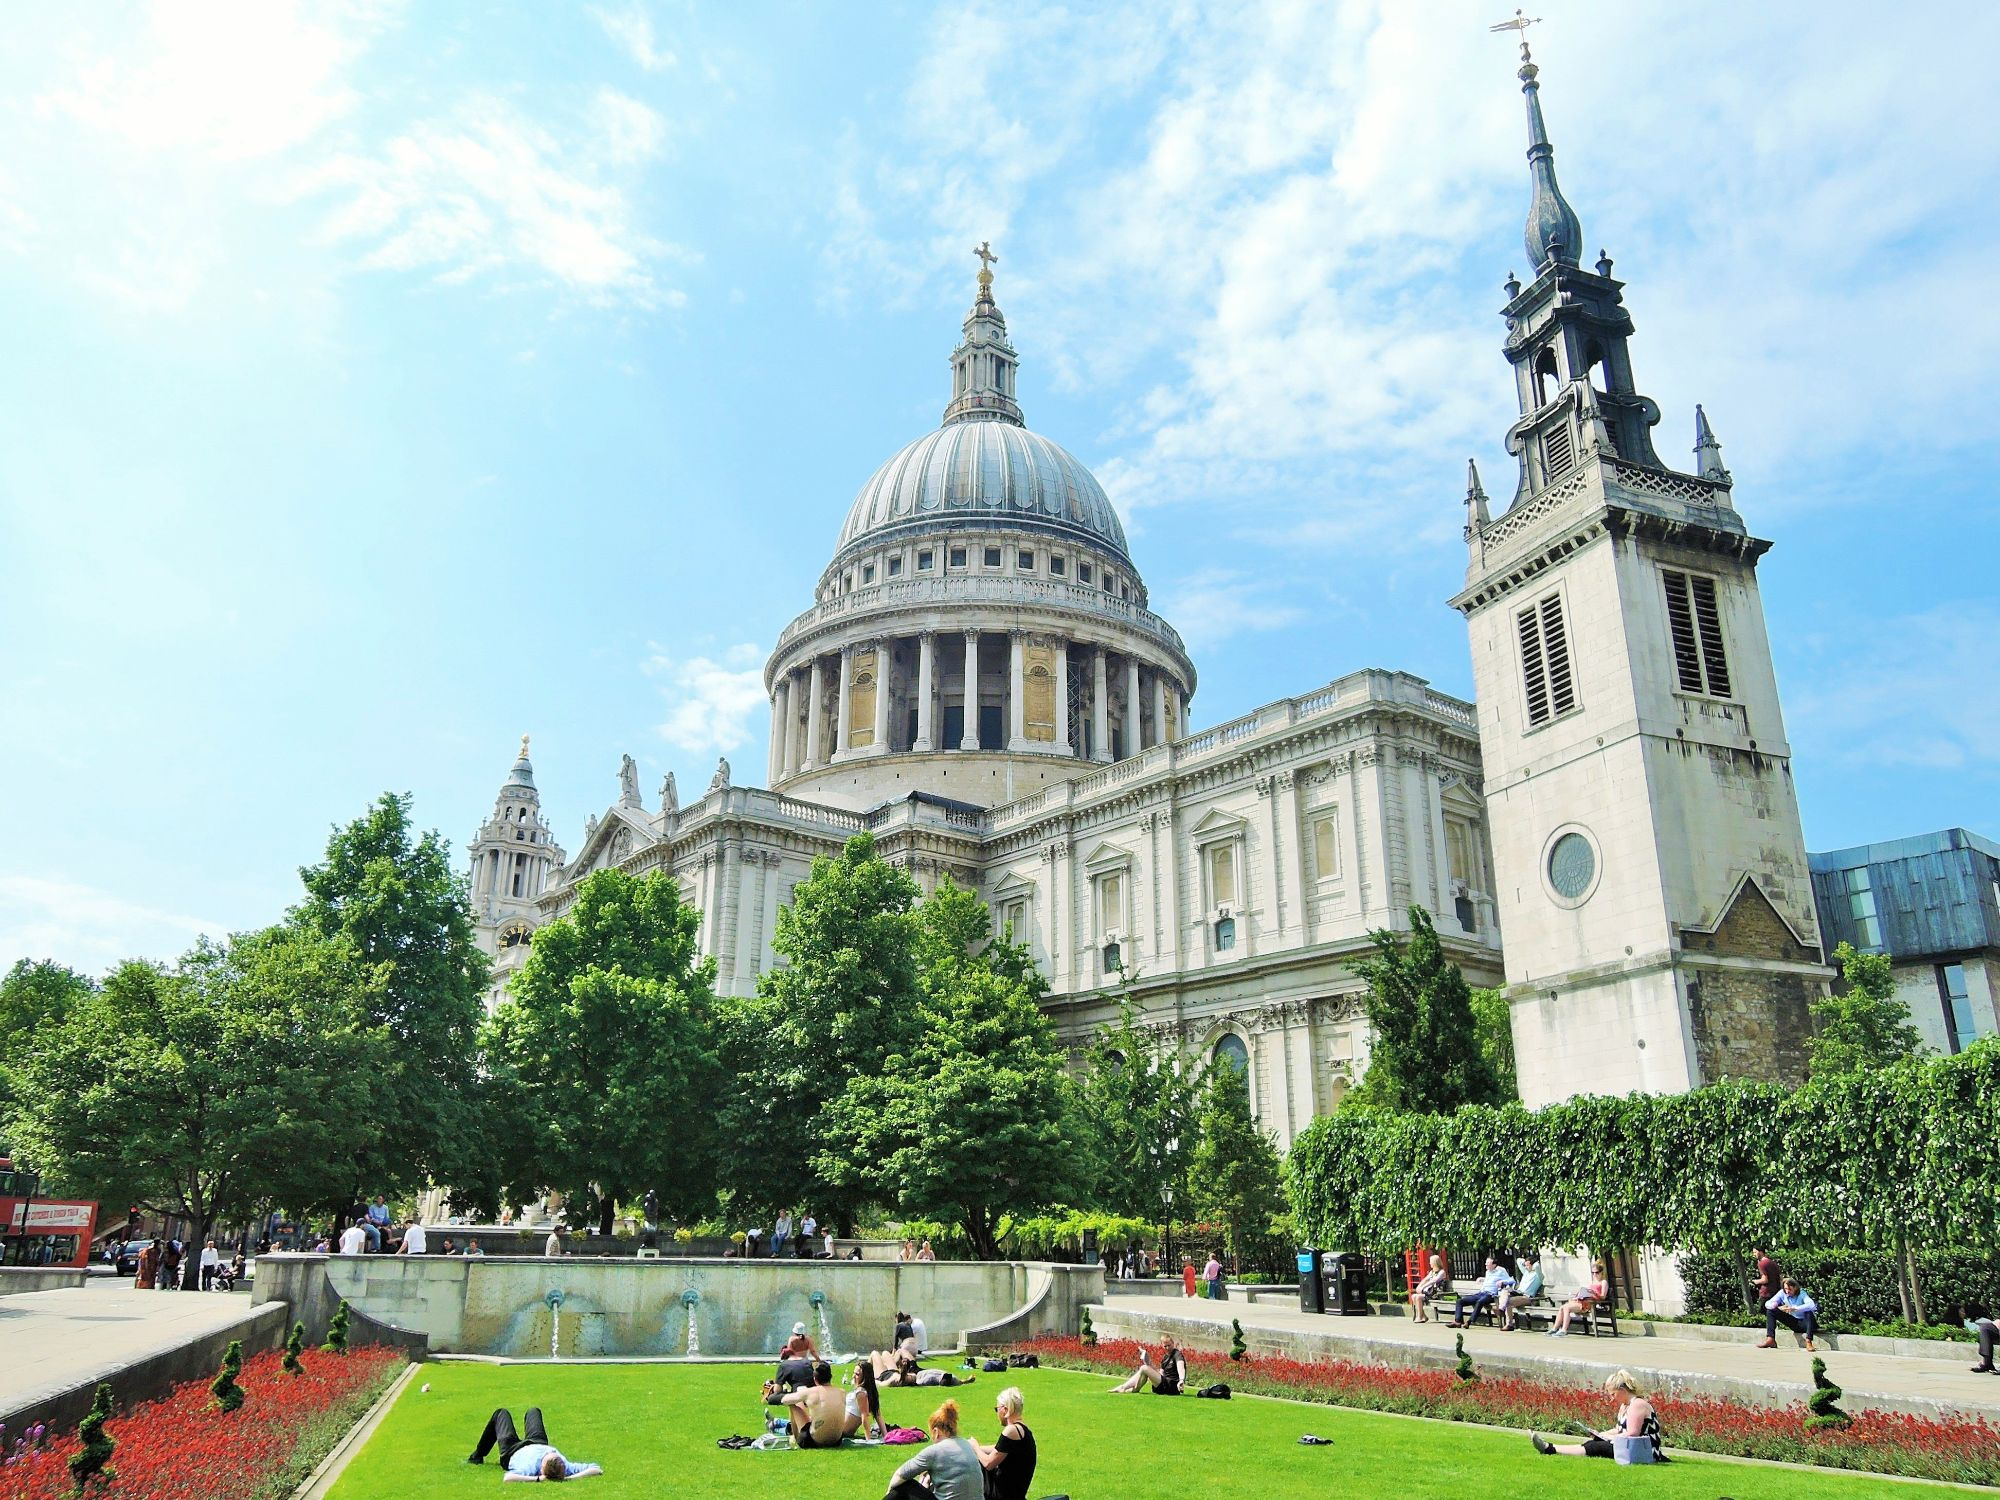 Photo of St Paul's Cathedral taken from Festival Gardens.